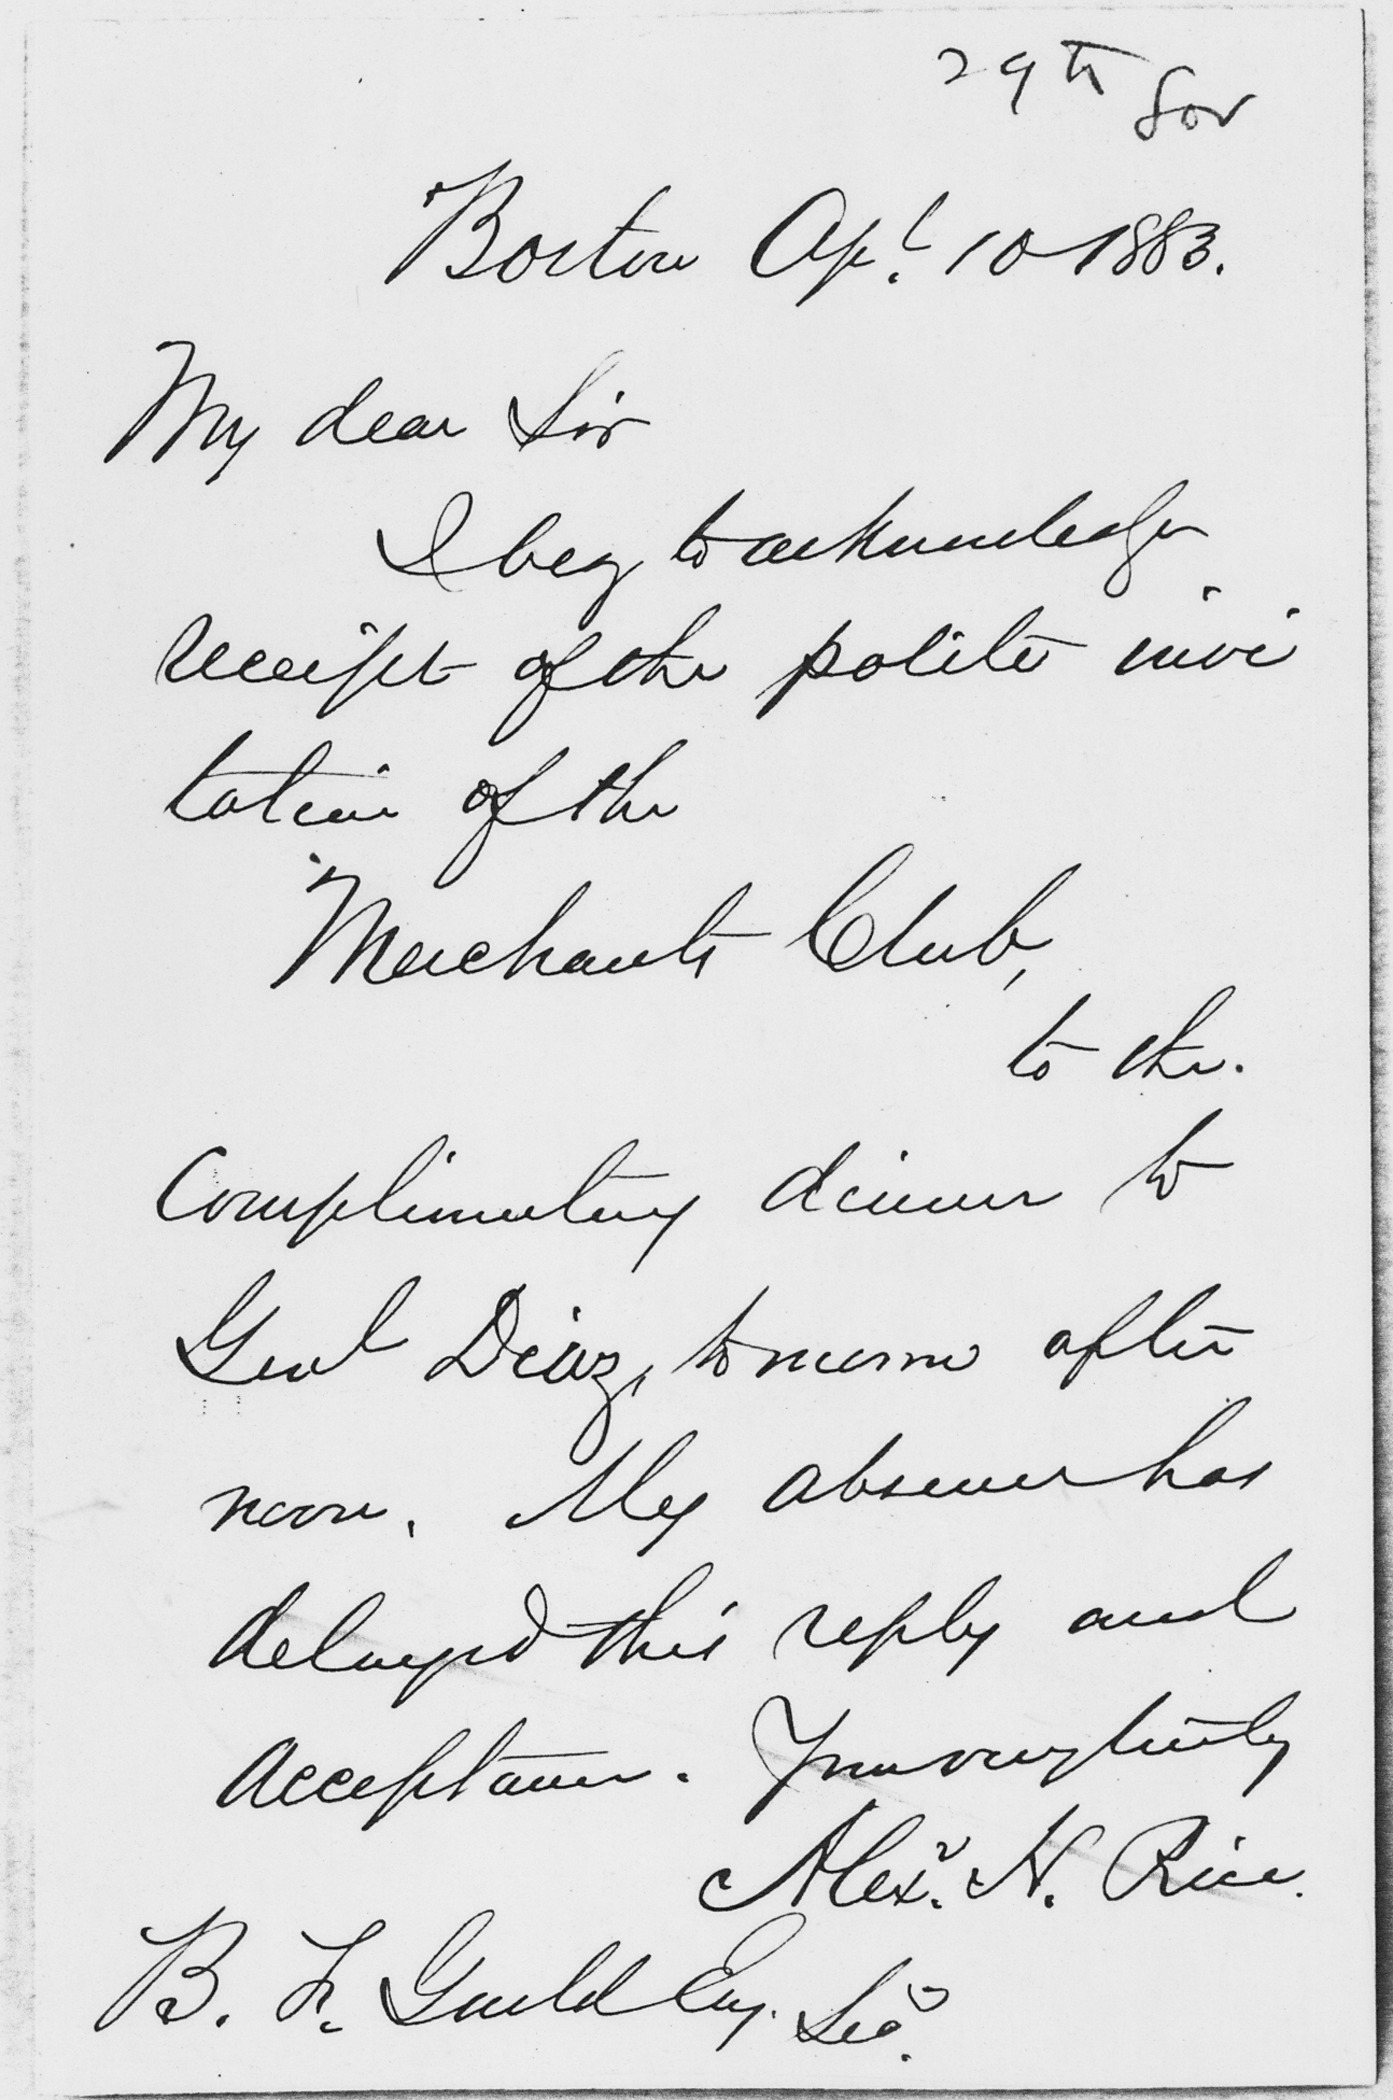 File:Alexander Rice Letter to B. F. Guild April 10, 1883   NARA